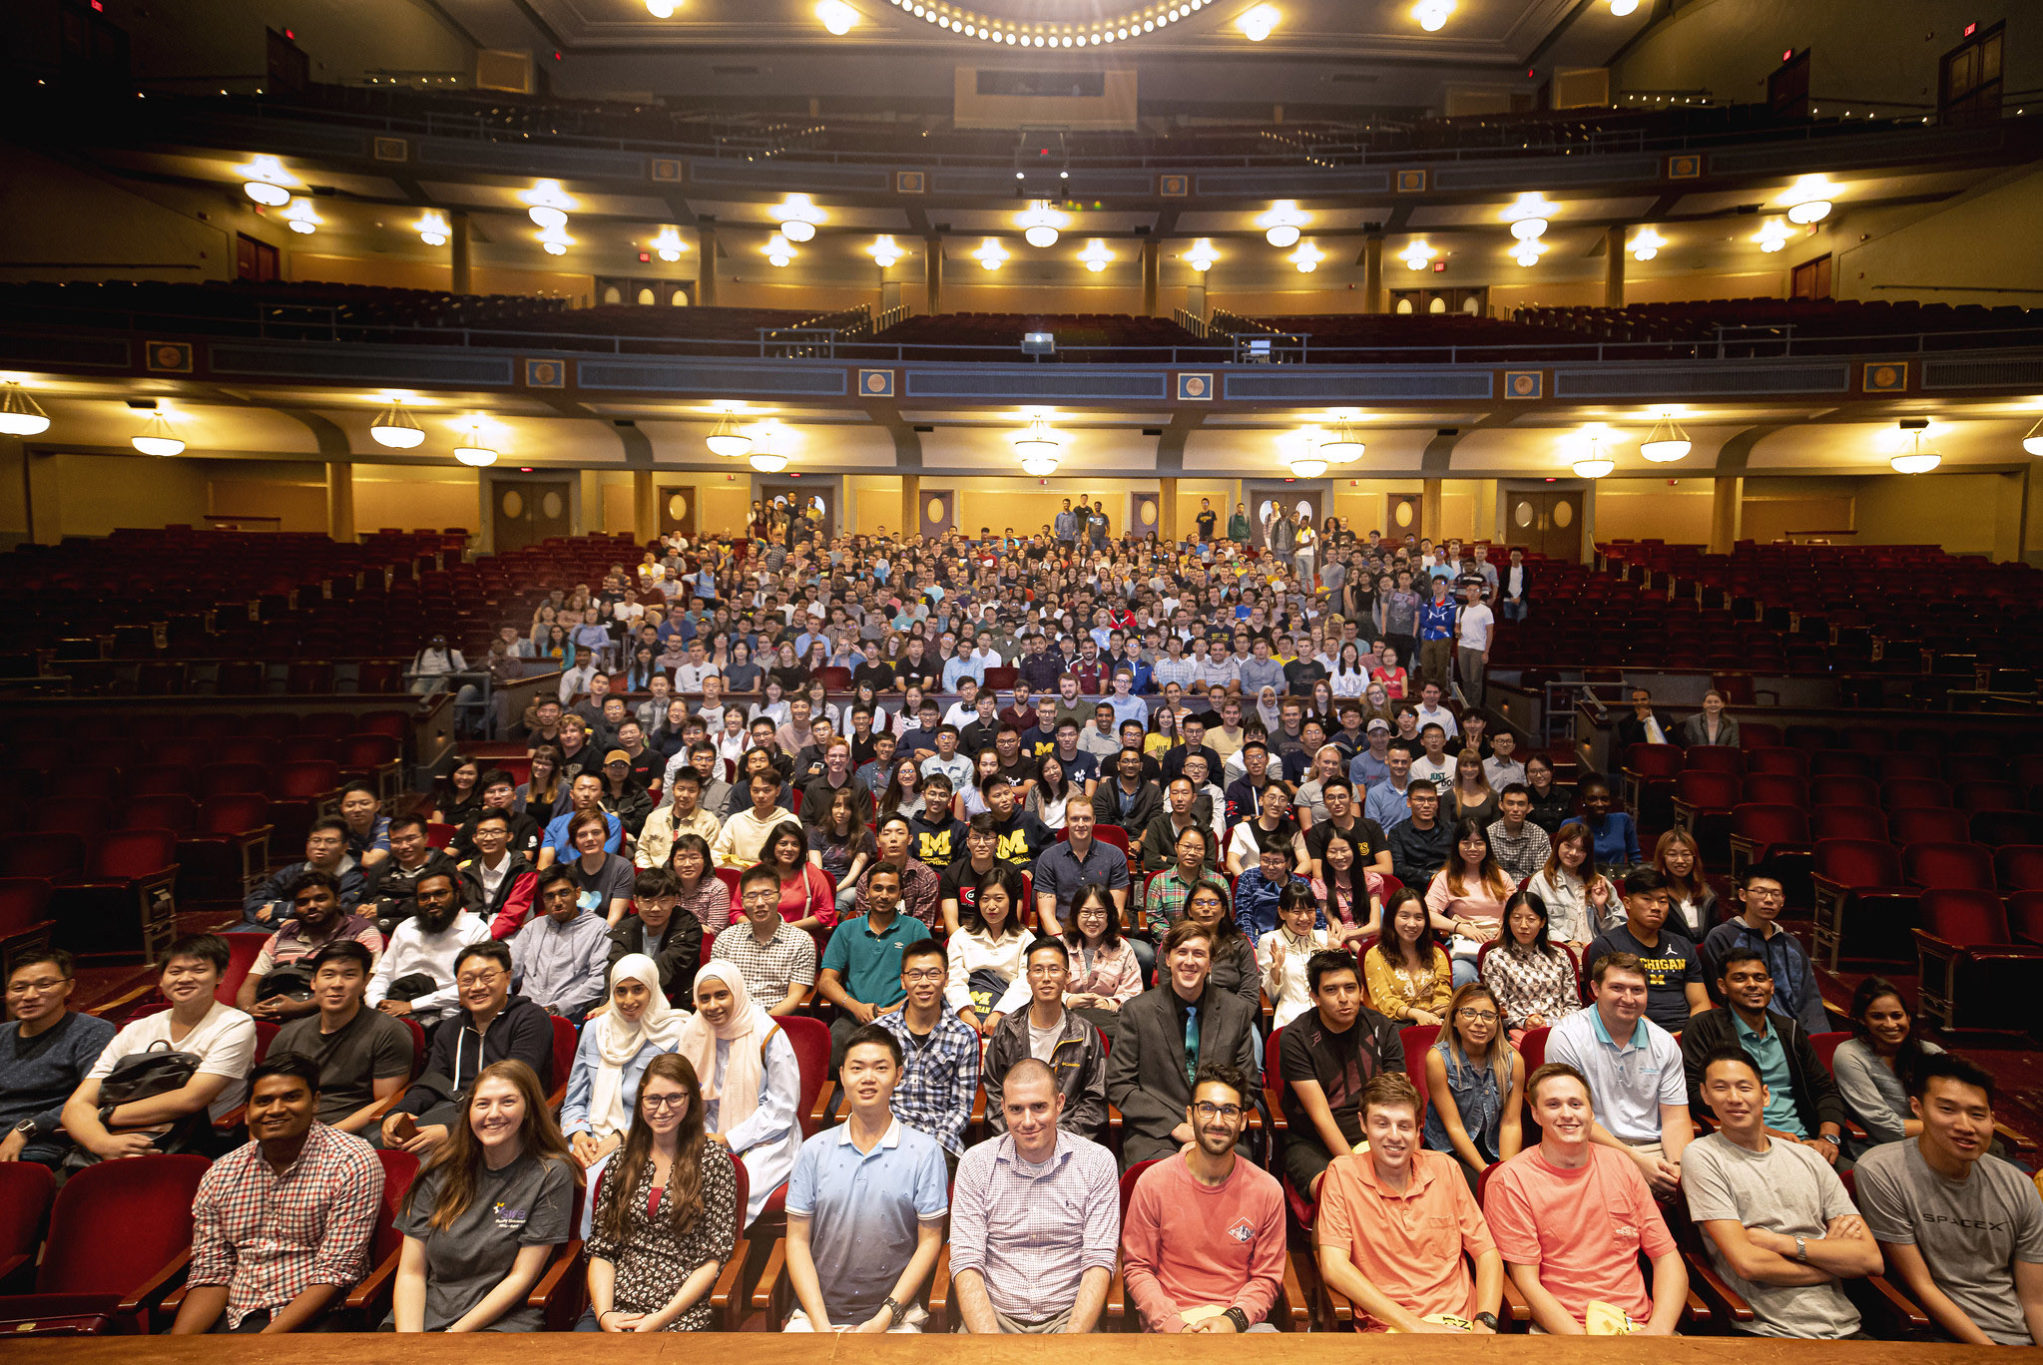 The next generation of Michigan Engineering graduate students gathered for a group portrait inside of Hill Auditorium to start off the new semester and the next few years of their lives together.